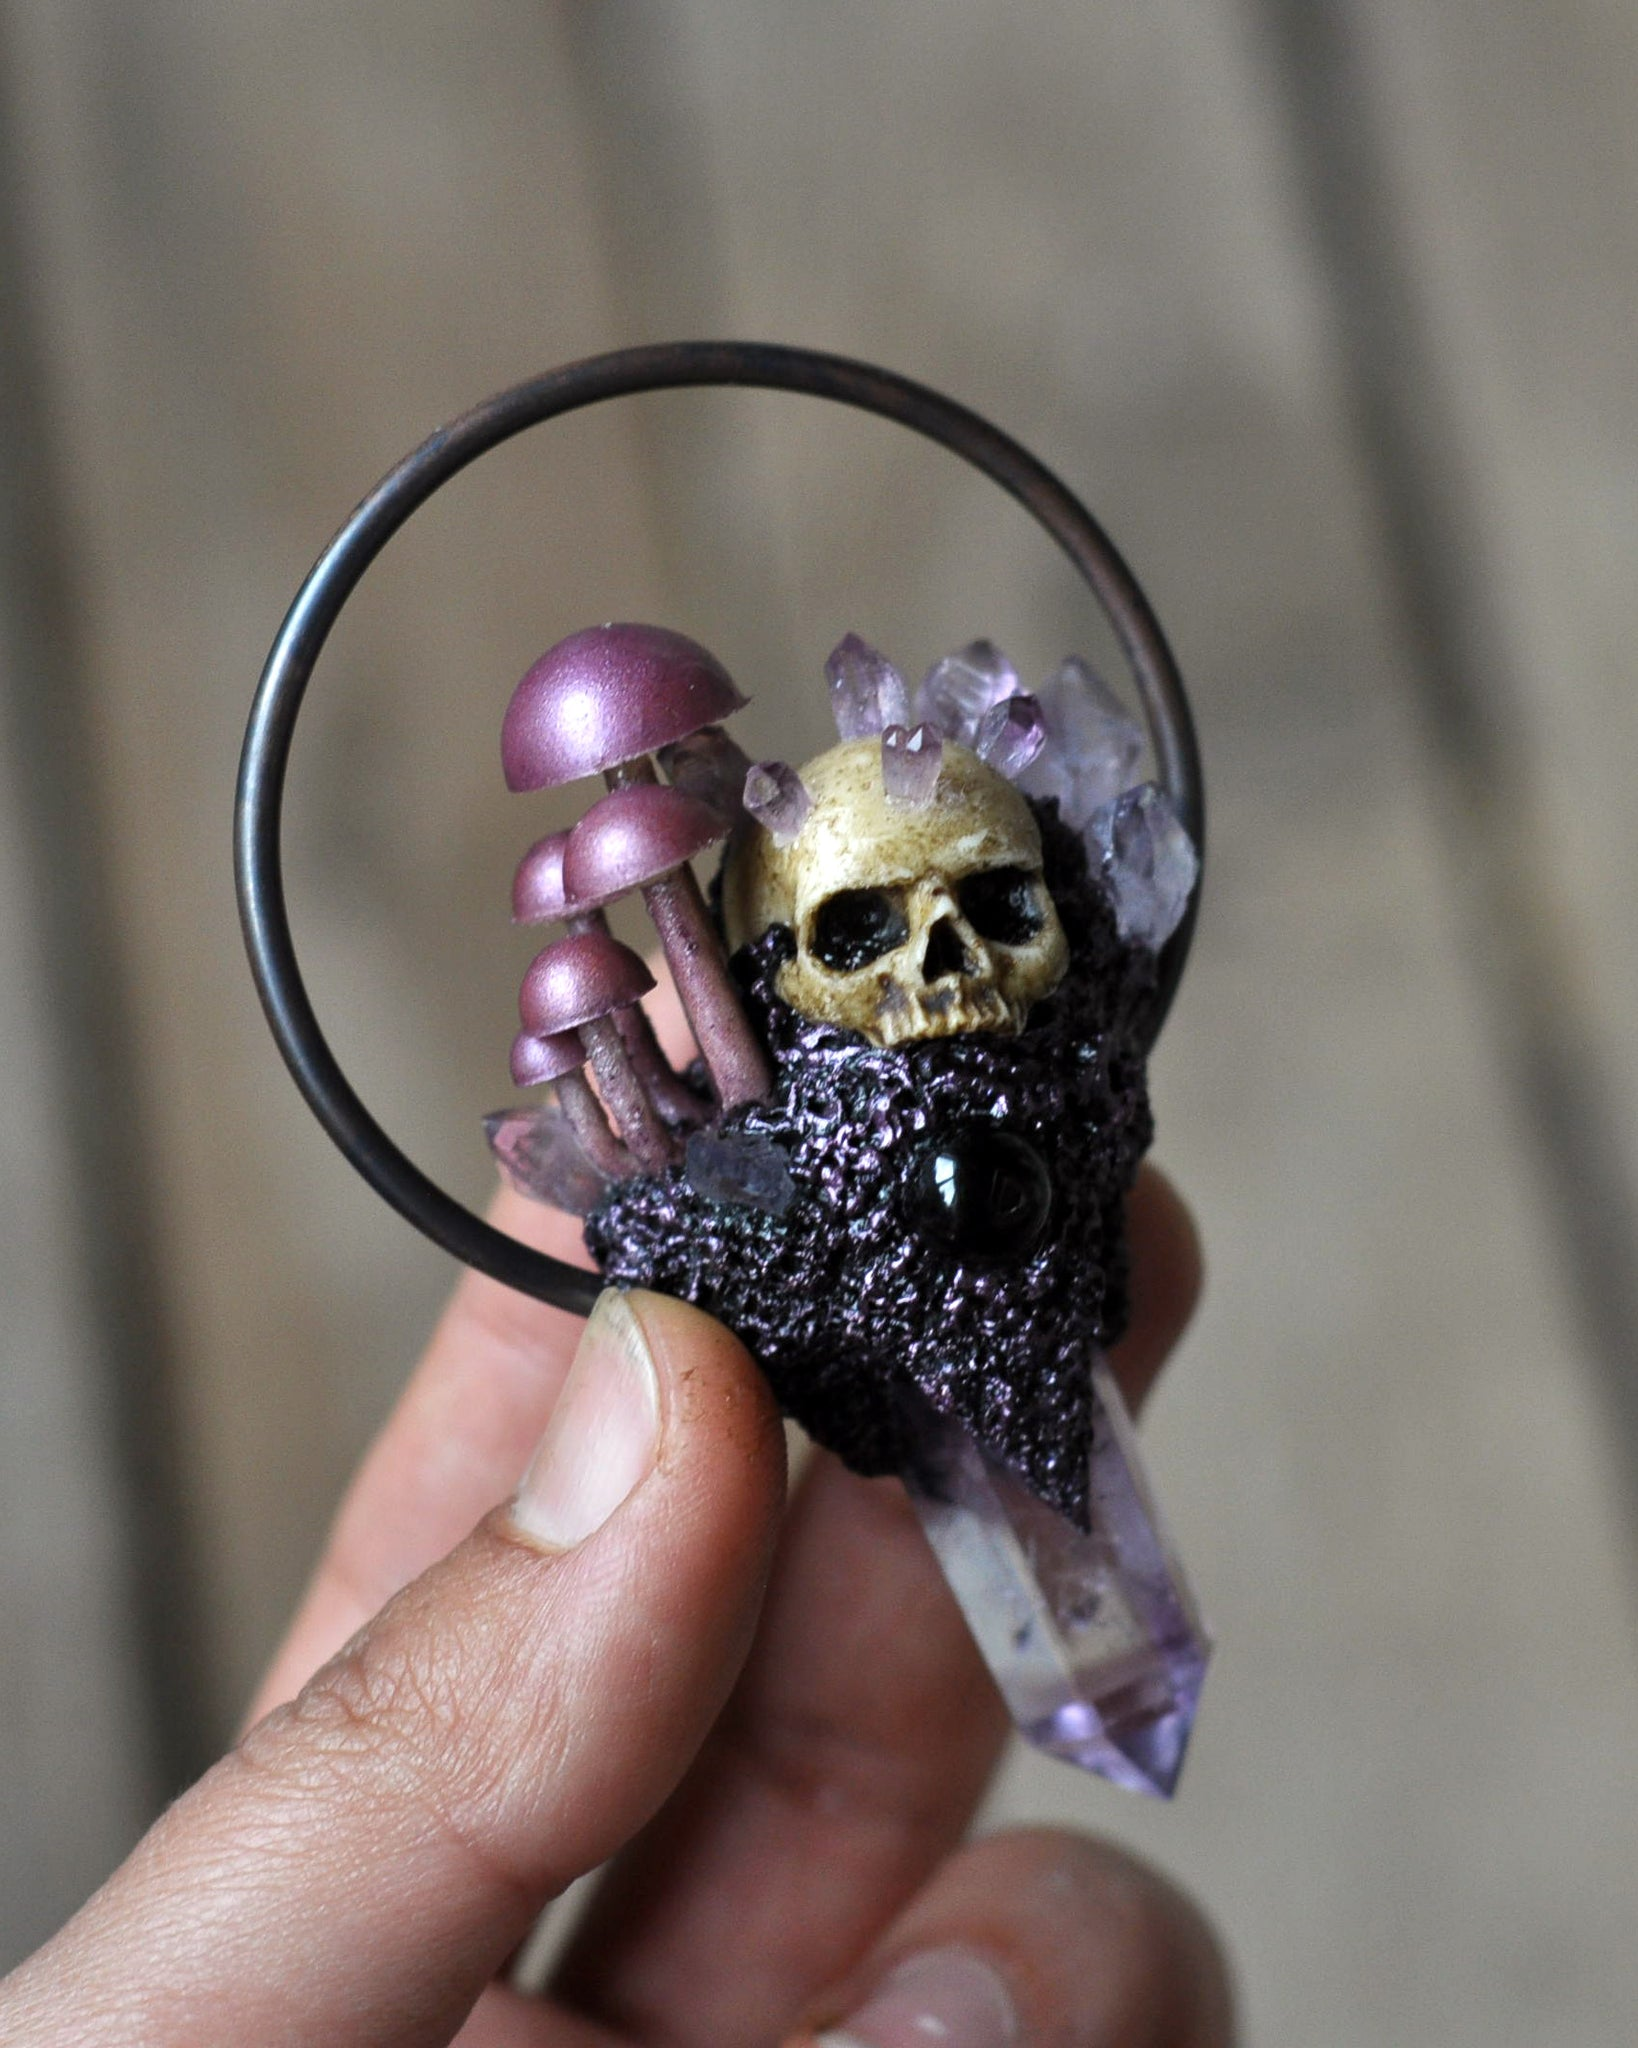 Mushrooms Family Pendant, Realistic Human Skull Pendant, Amethyst Crystal Point Jewelry, Gothic Style Pendant, Resin Jewelry